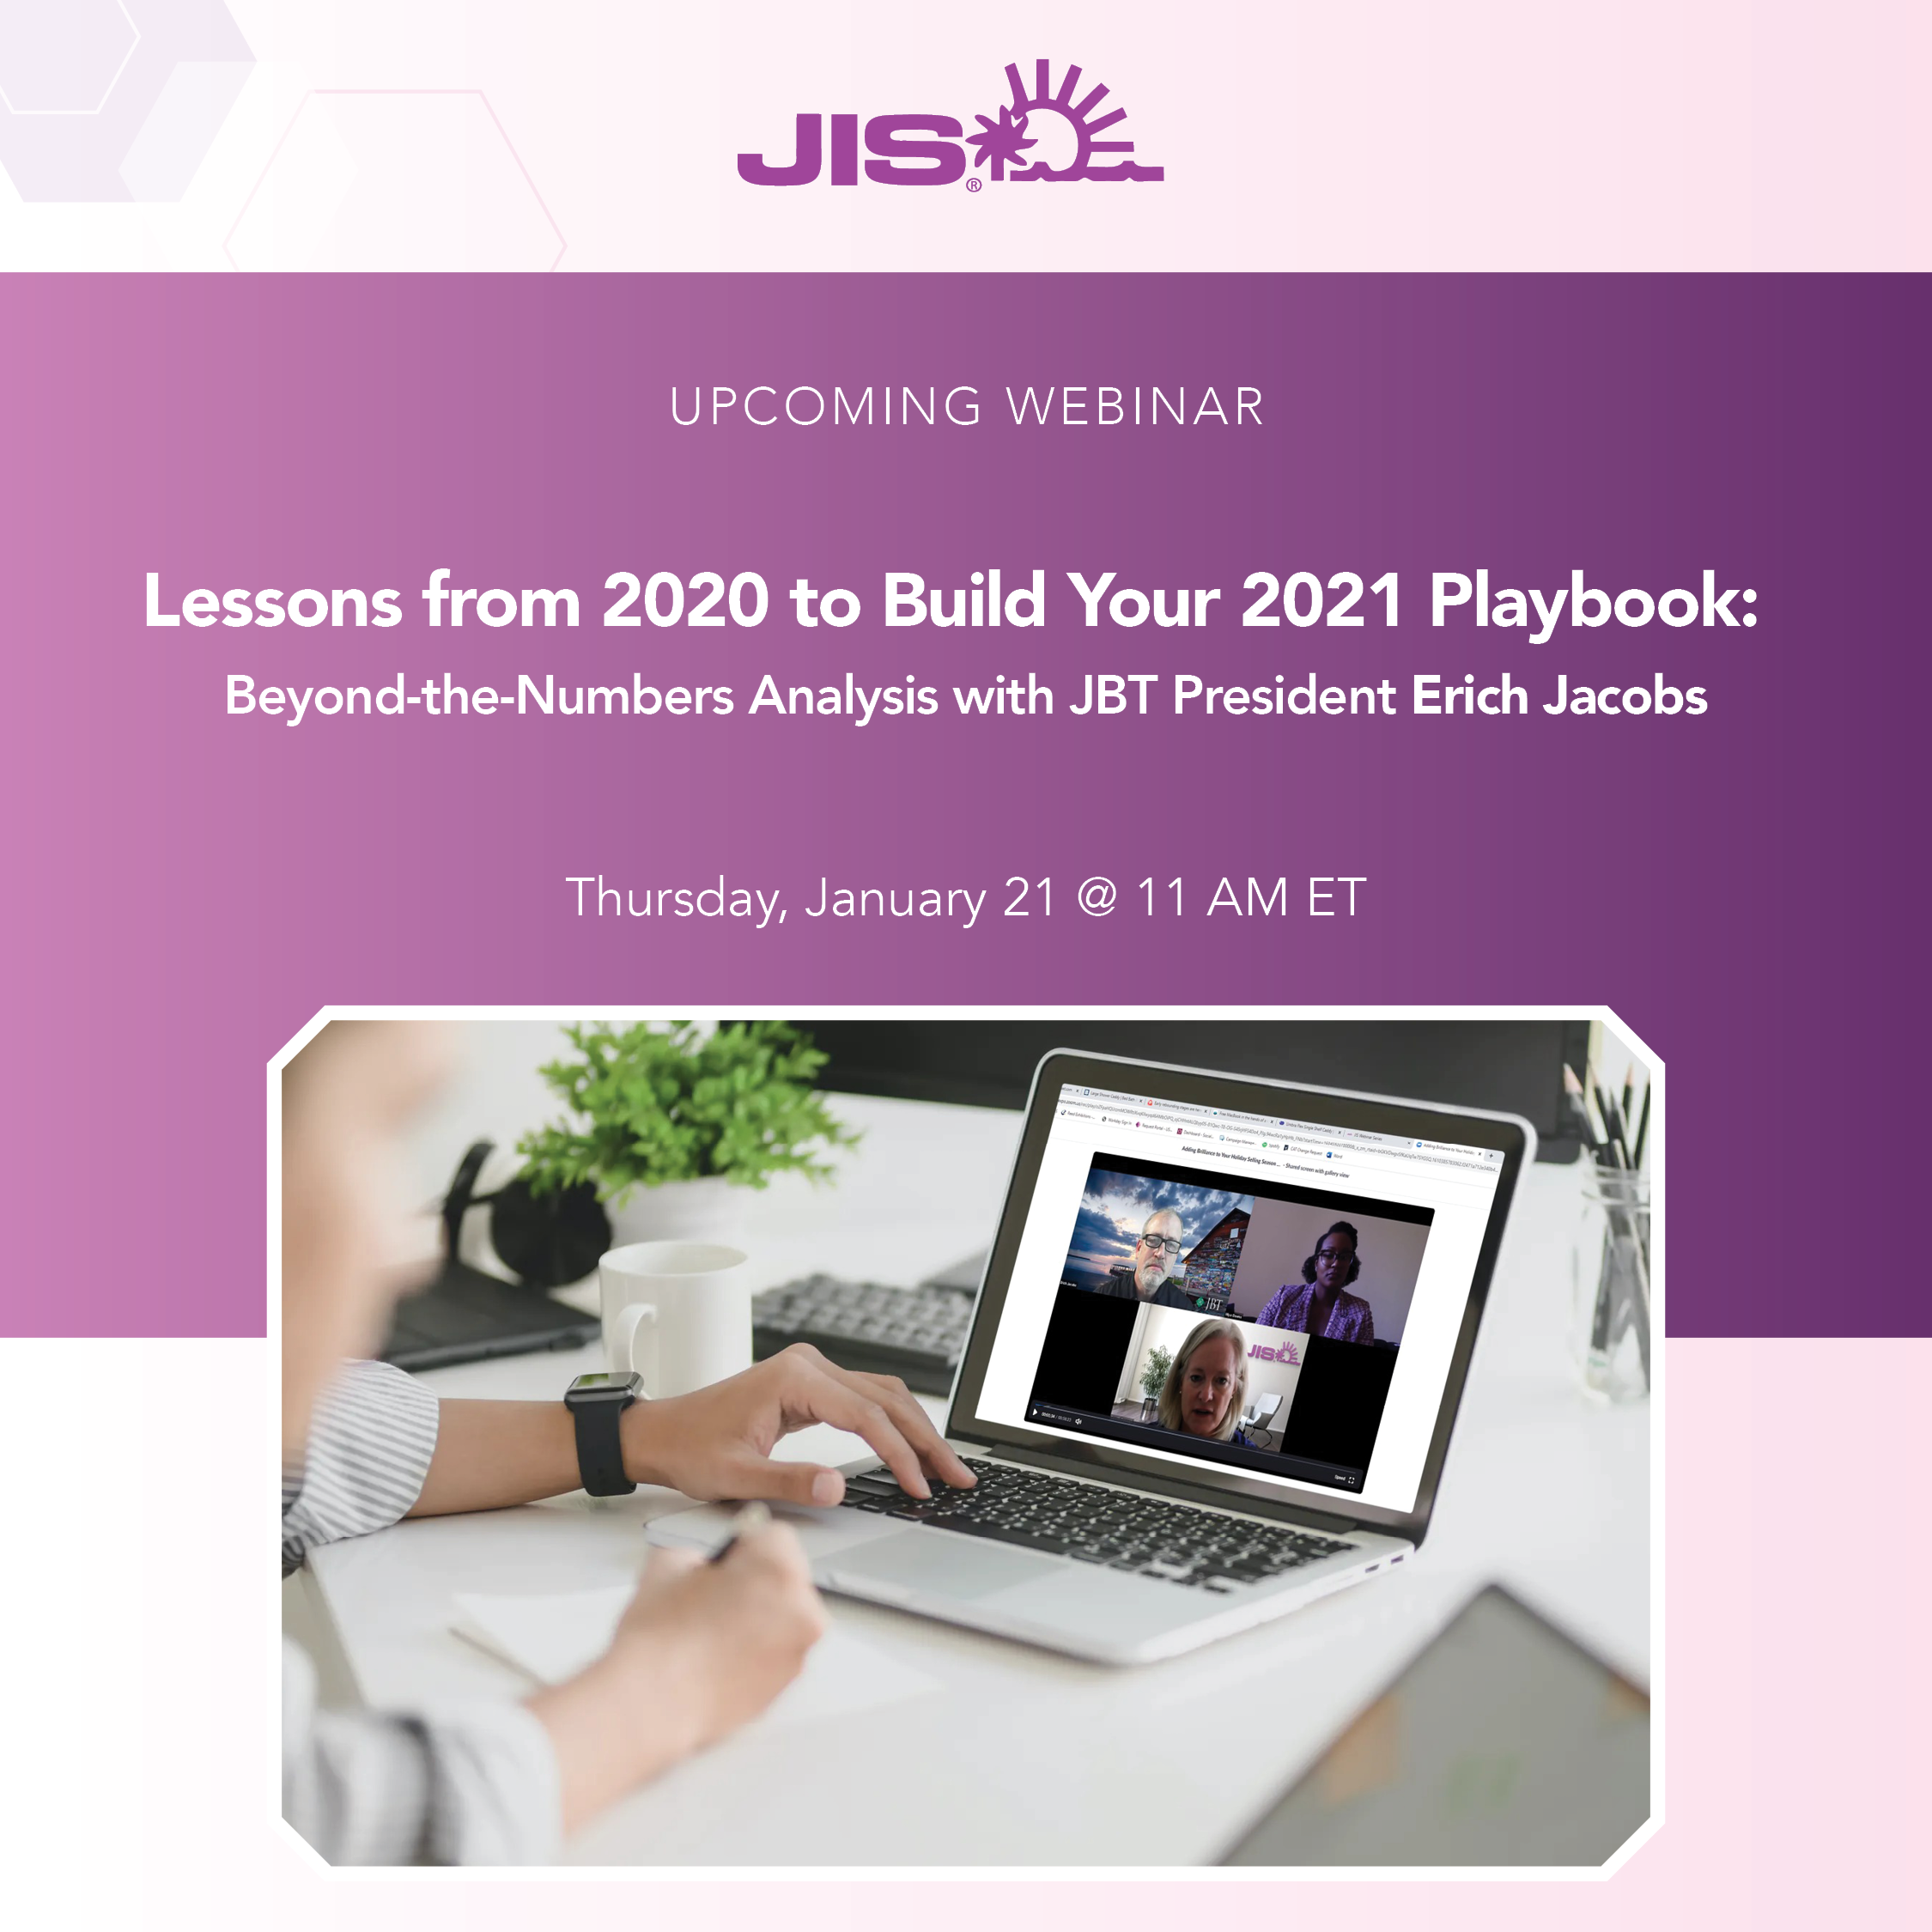 Lessons from 2020 to Build your 2021 Playbook